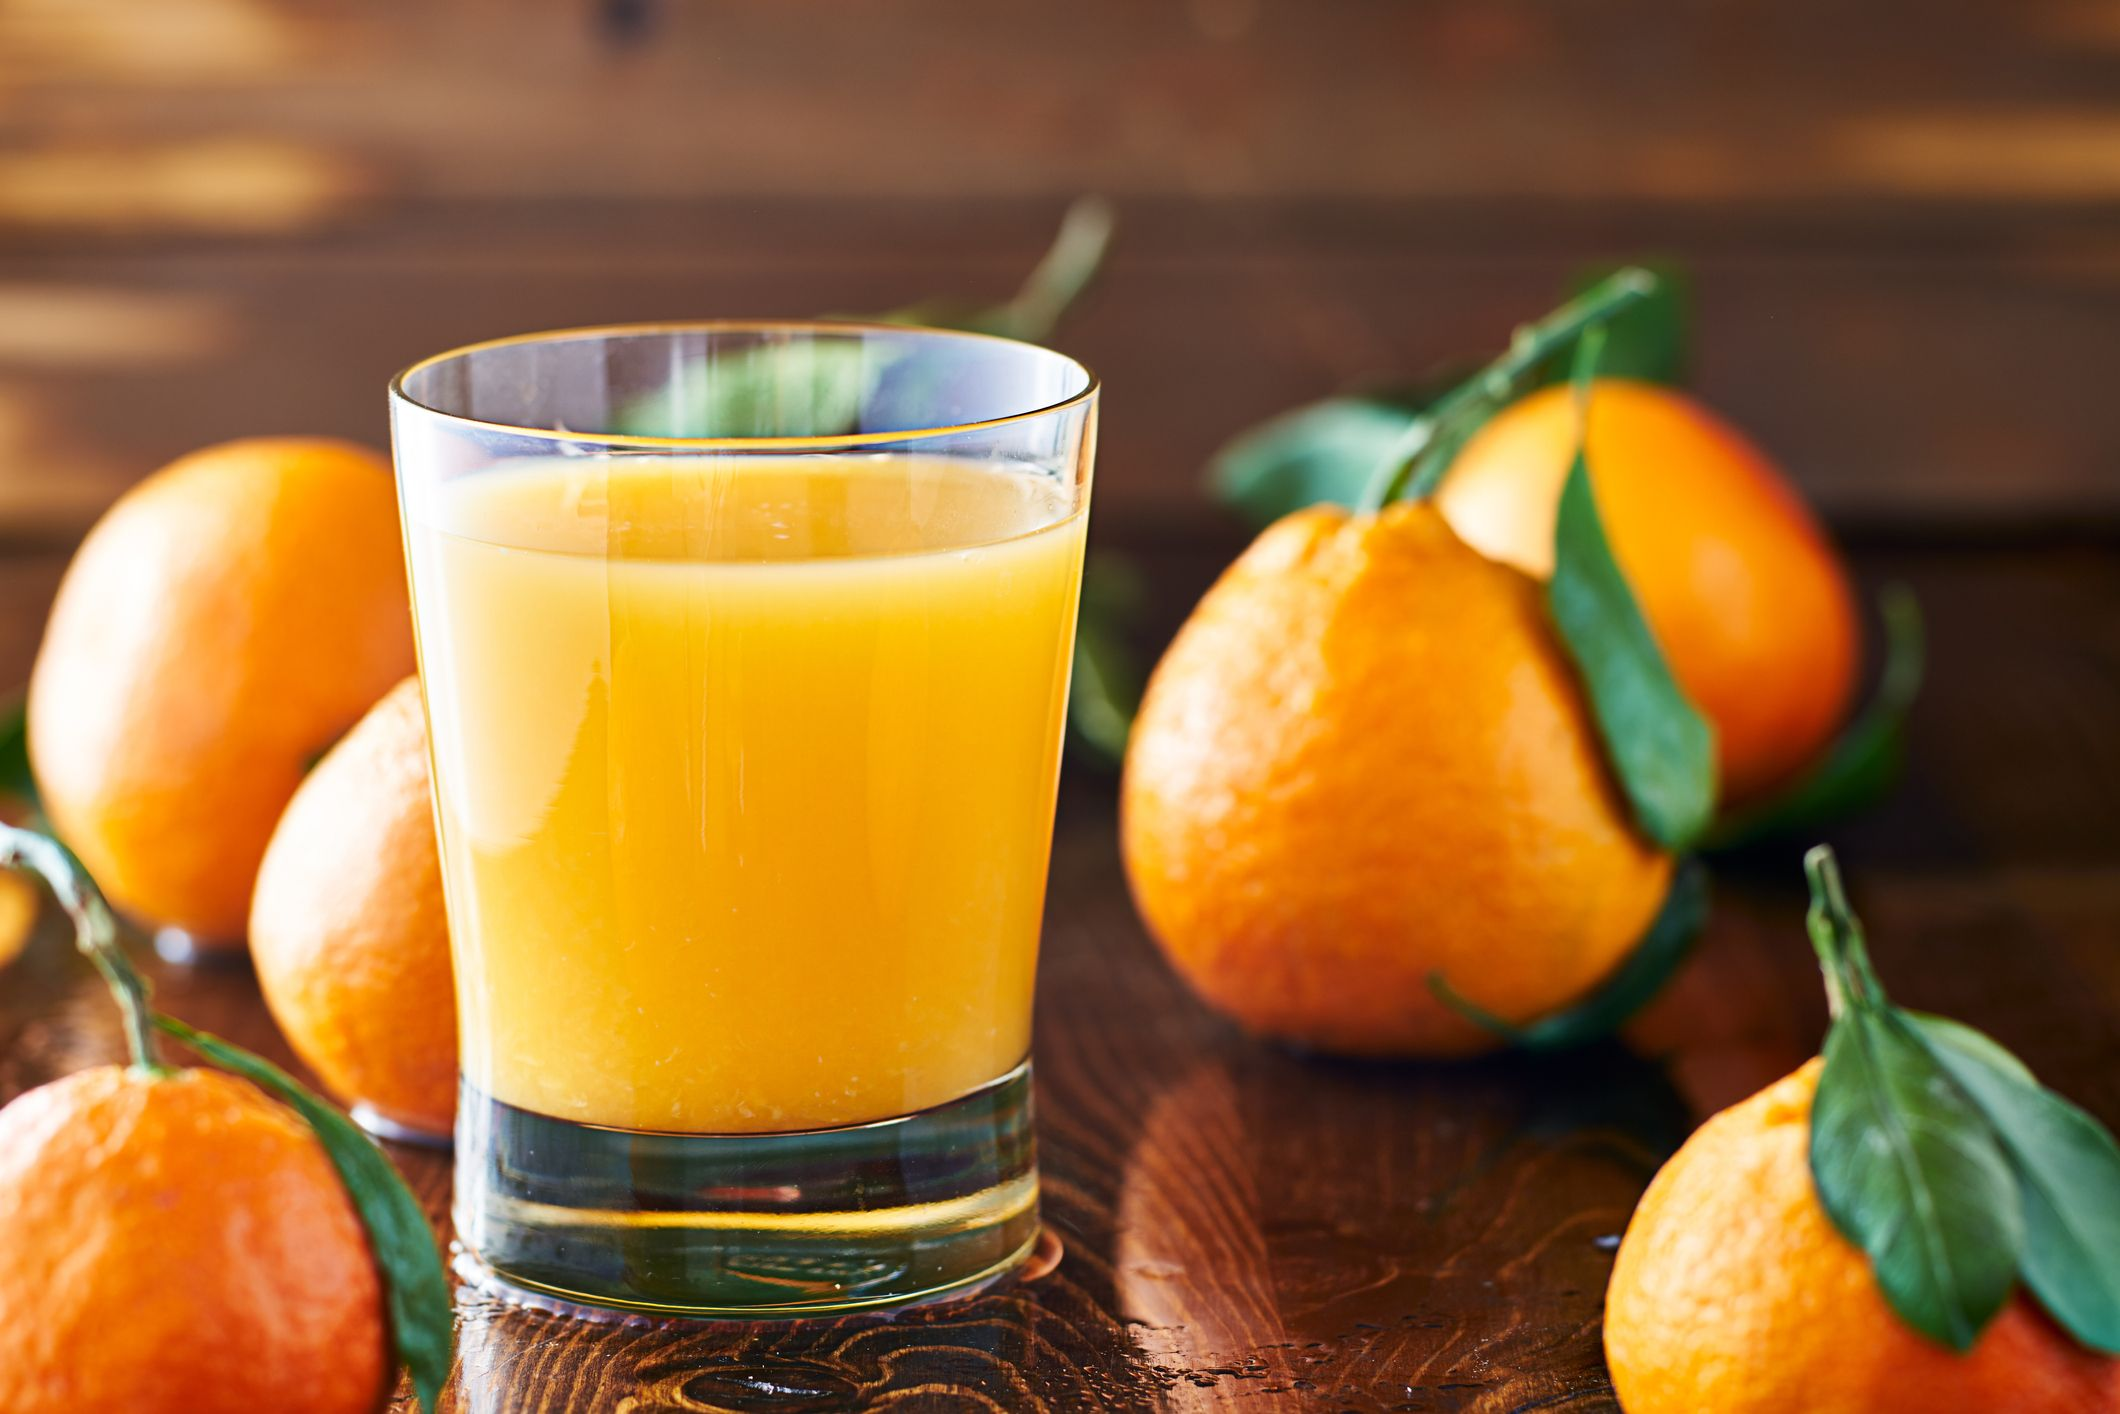 orange juice health benefits - is orange juice good for you?